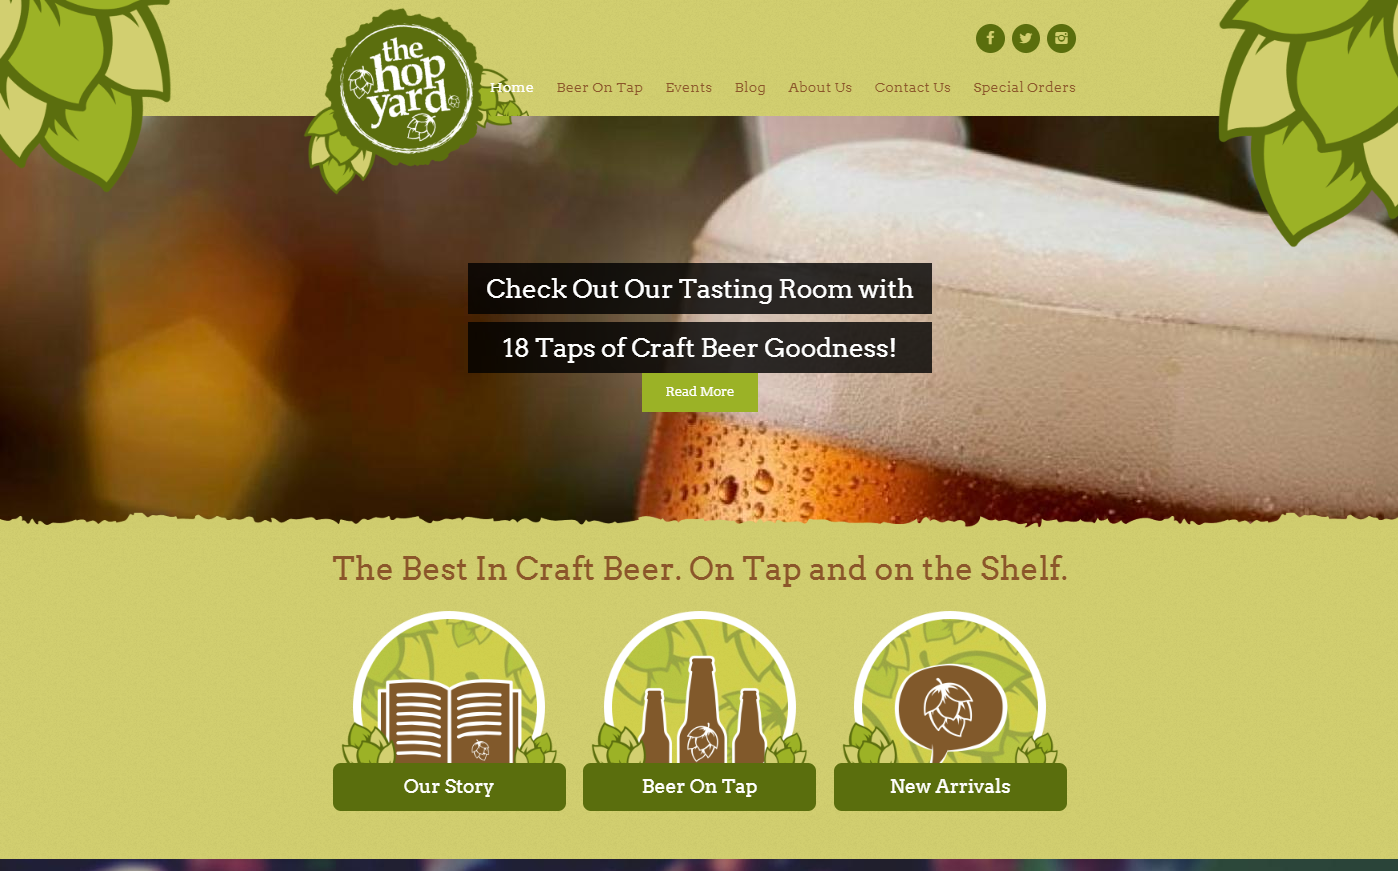 the-hop-yard-home-page-design